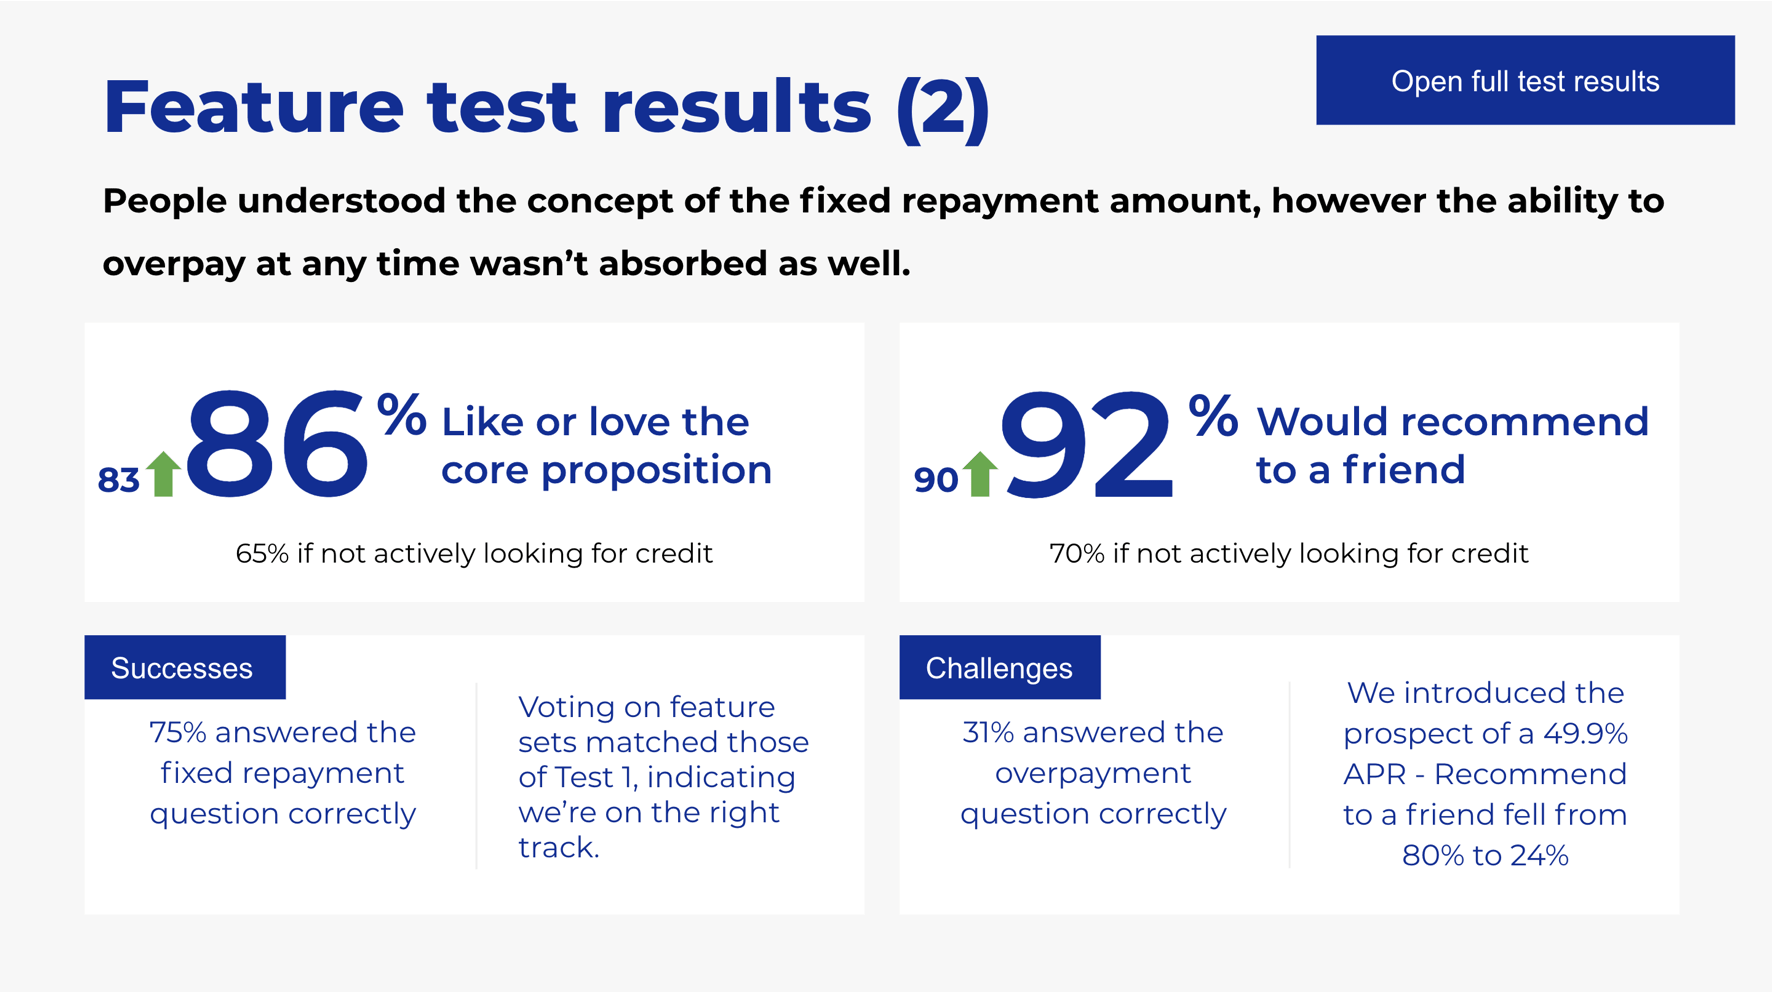 Test results 1